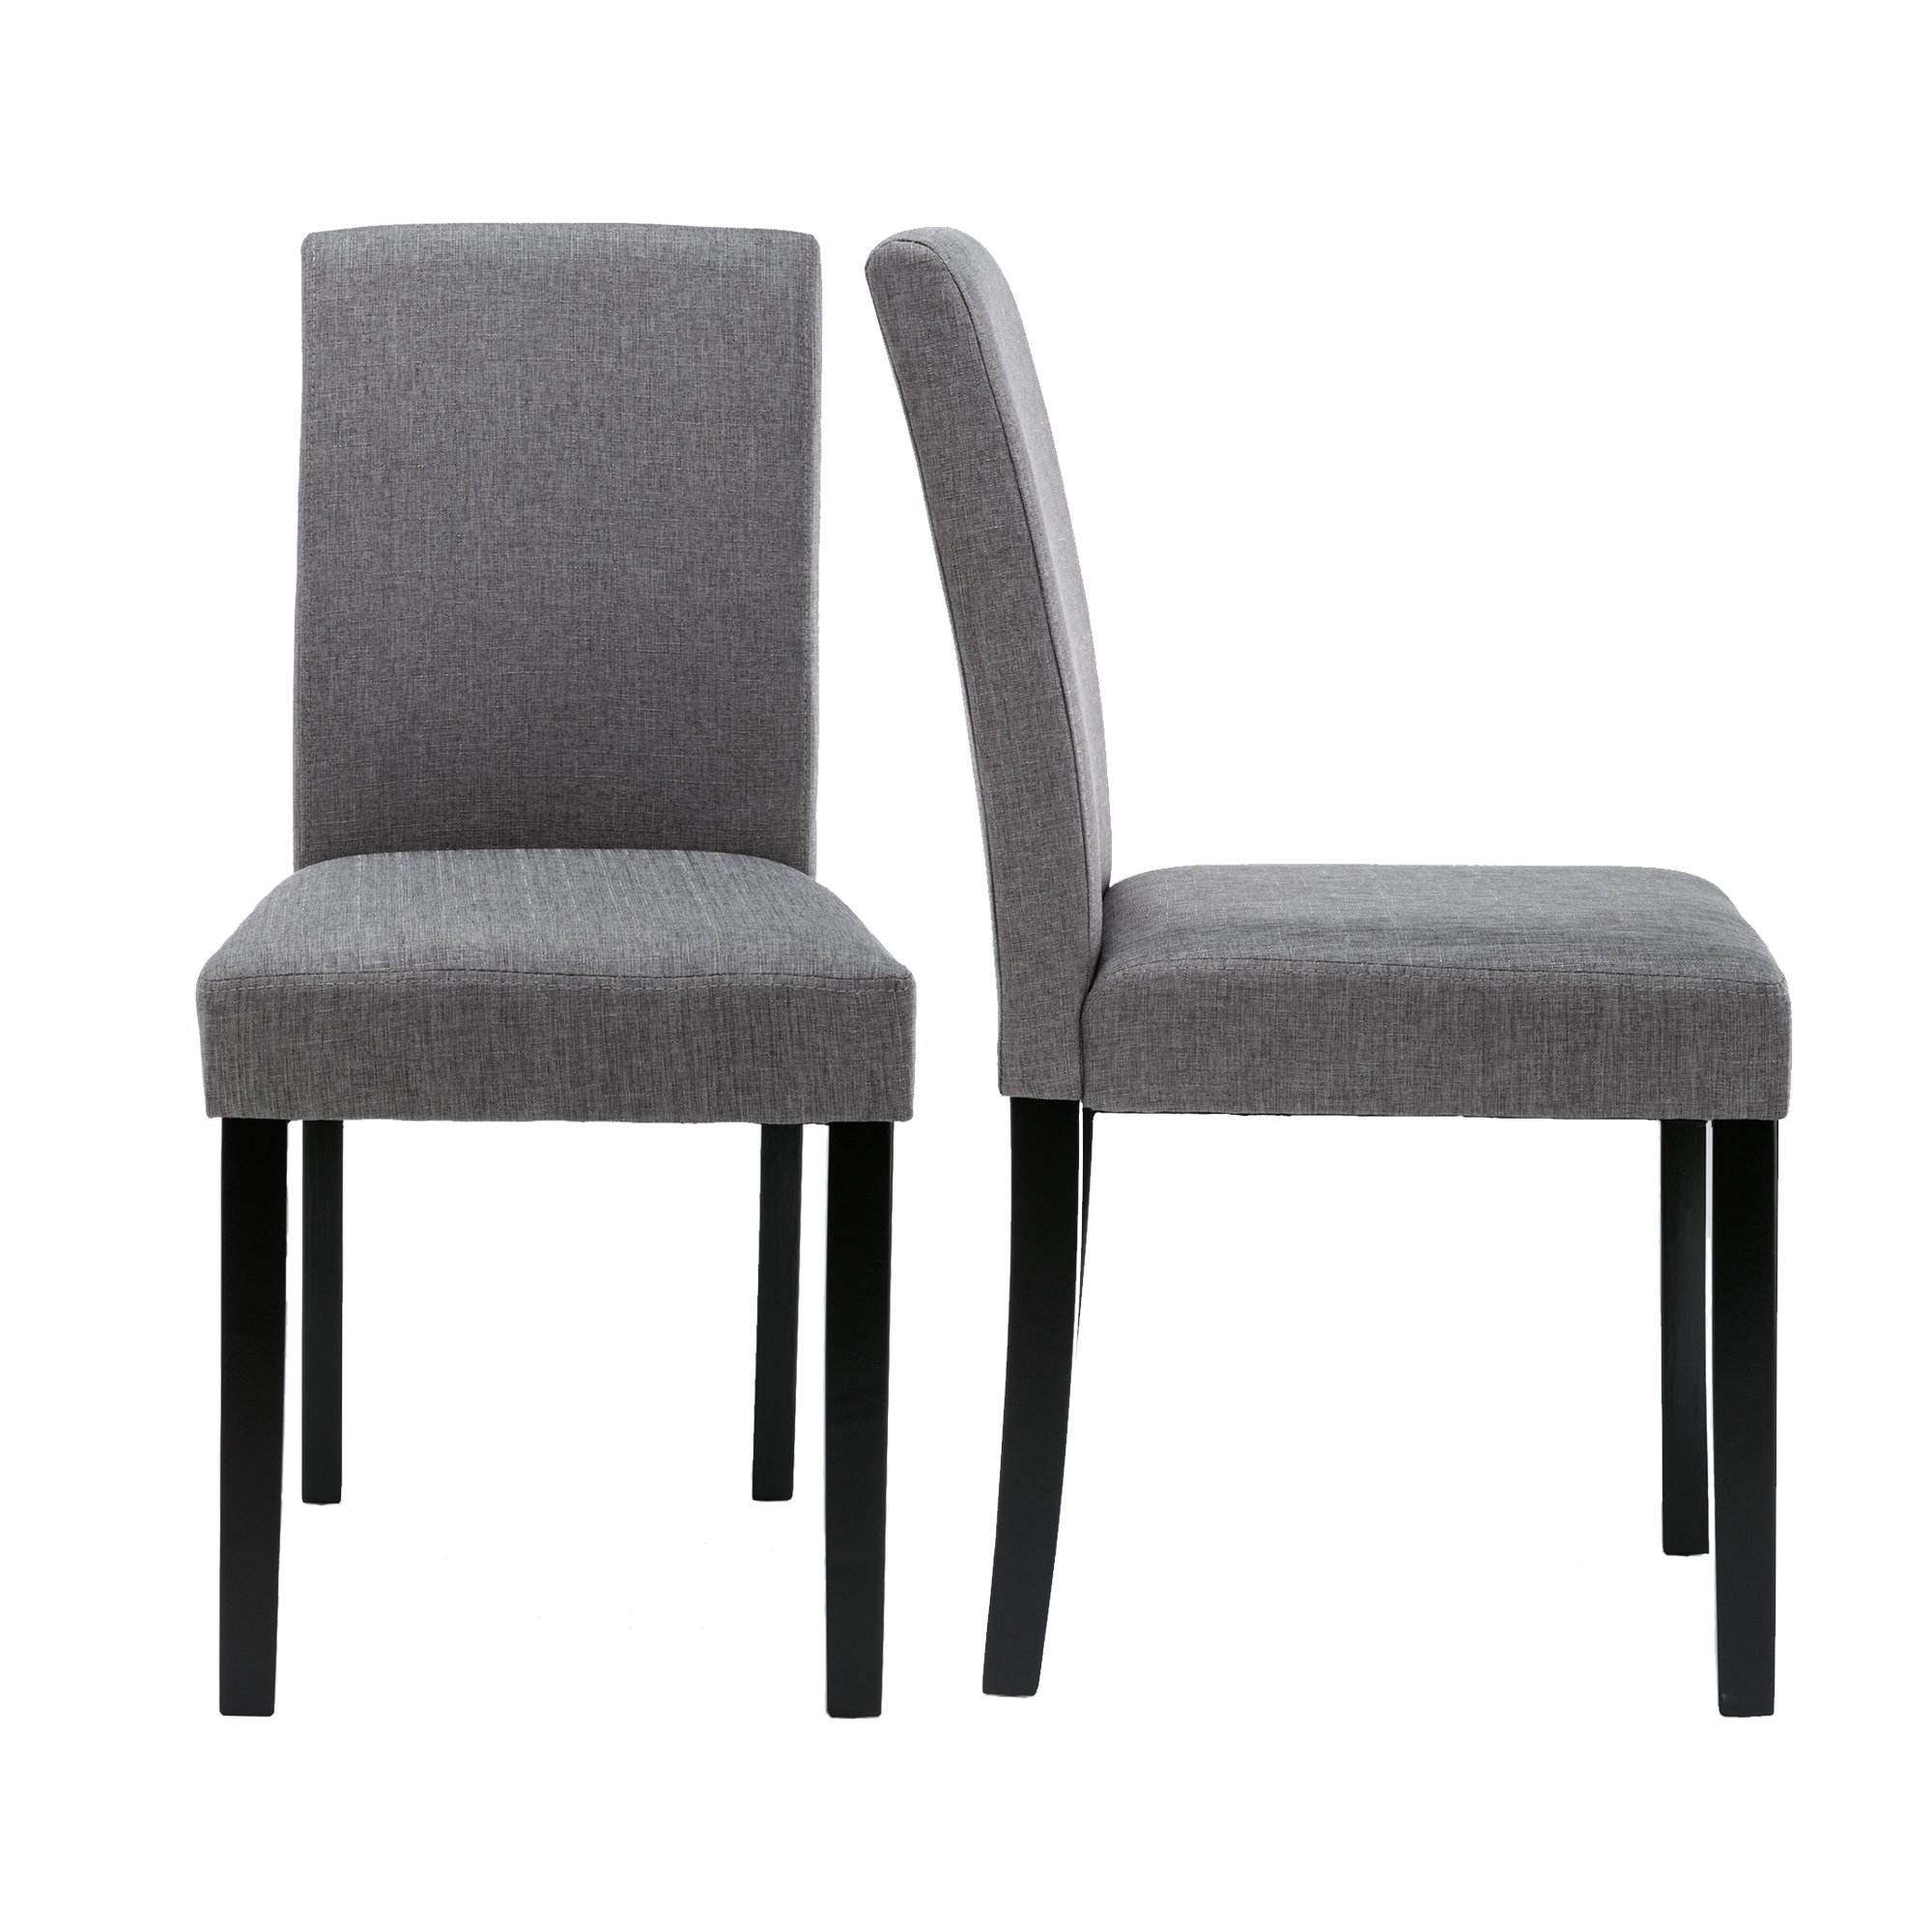 Urban Style Solid Wood Fabric Padded Parson Chair, Grey, Set of 2